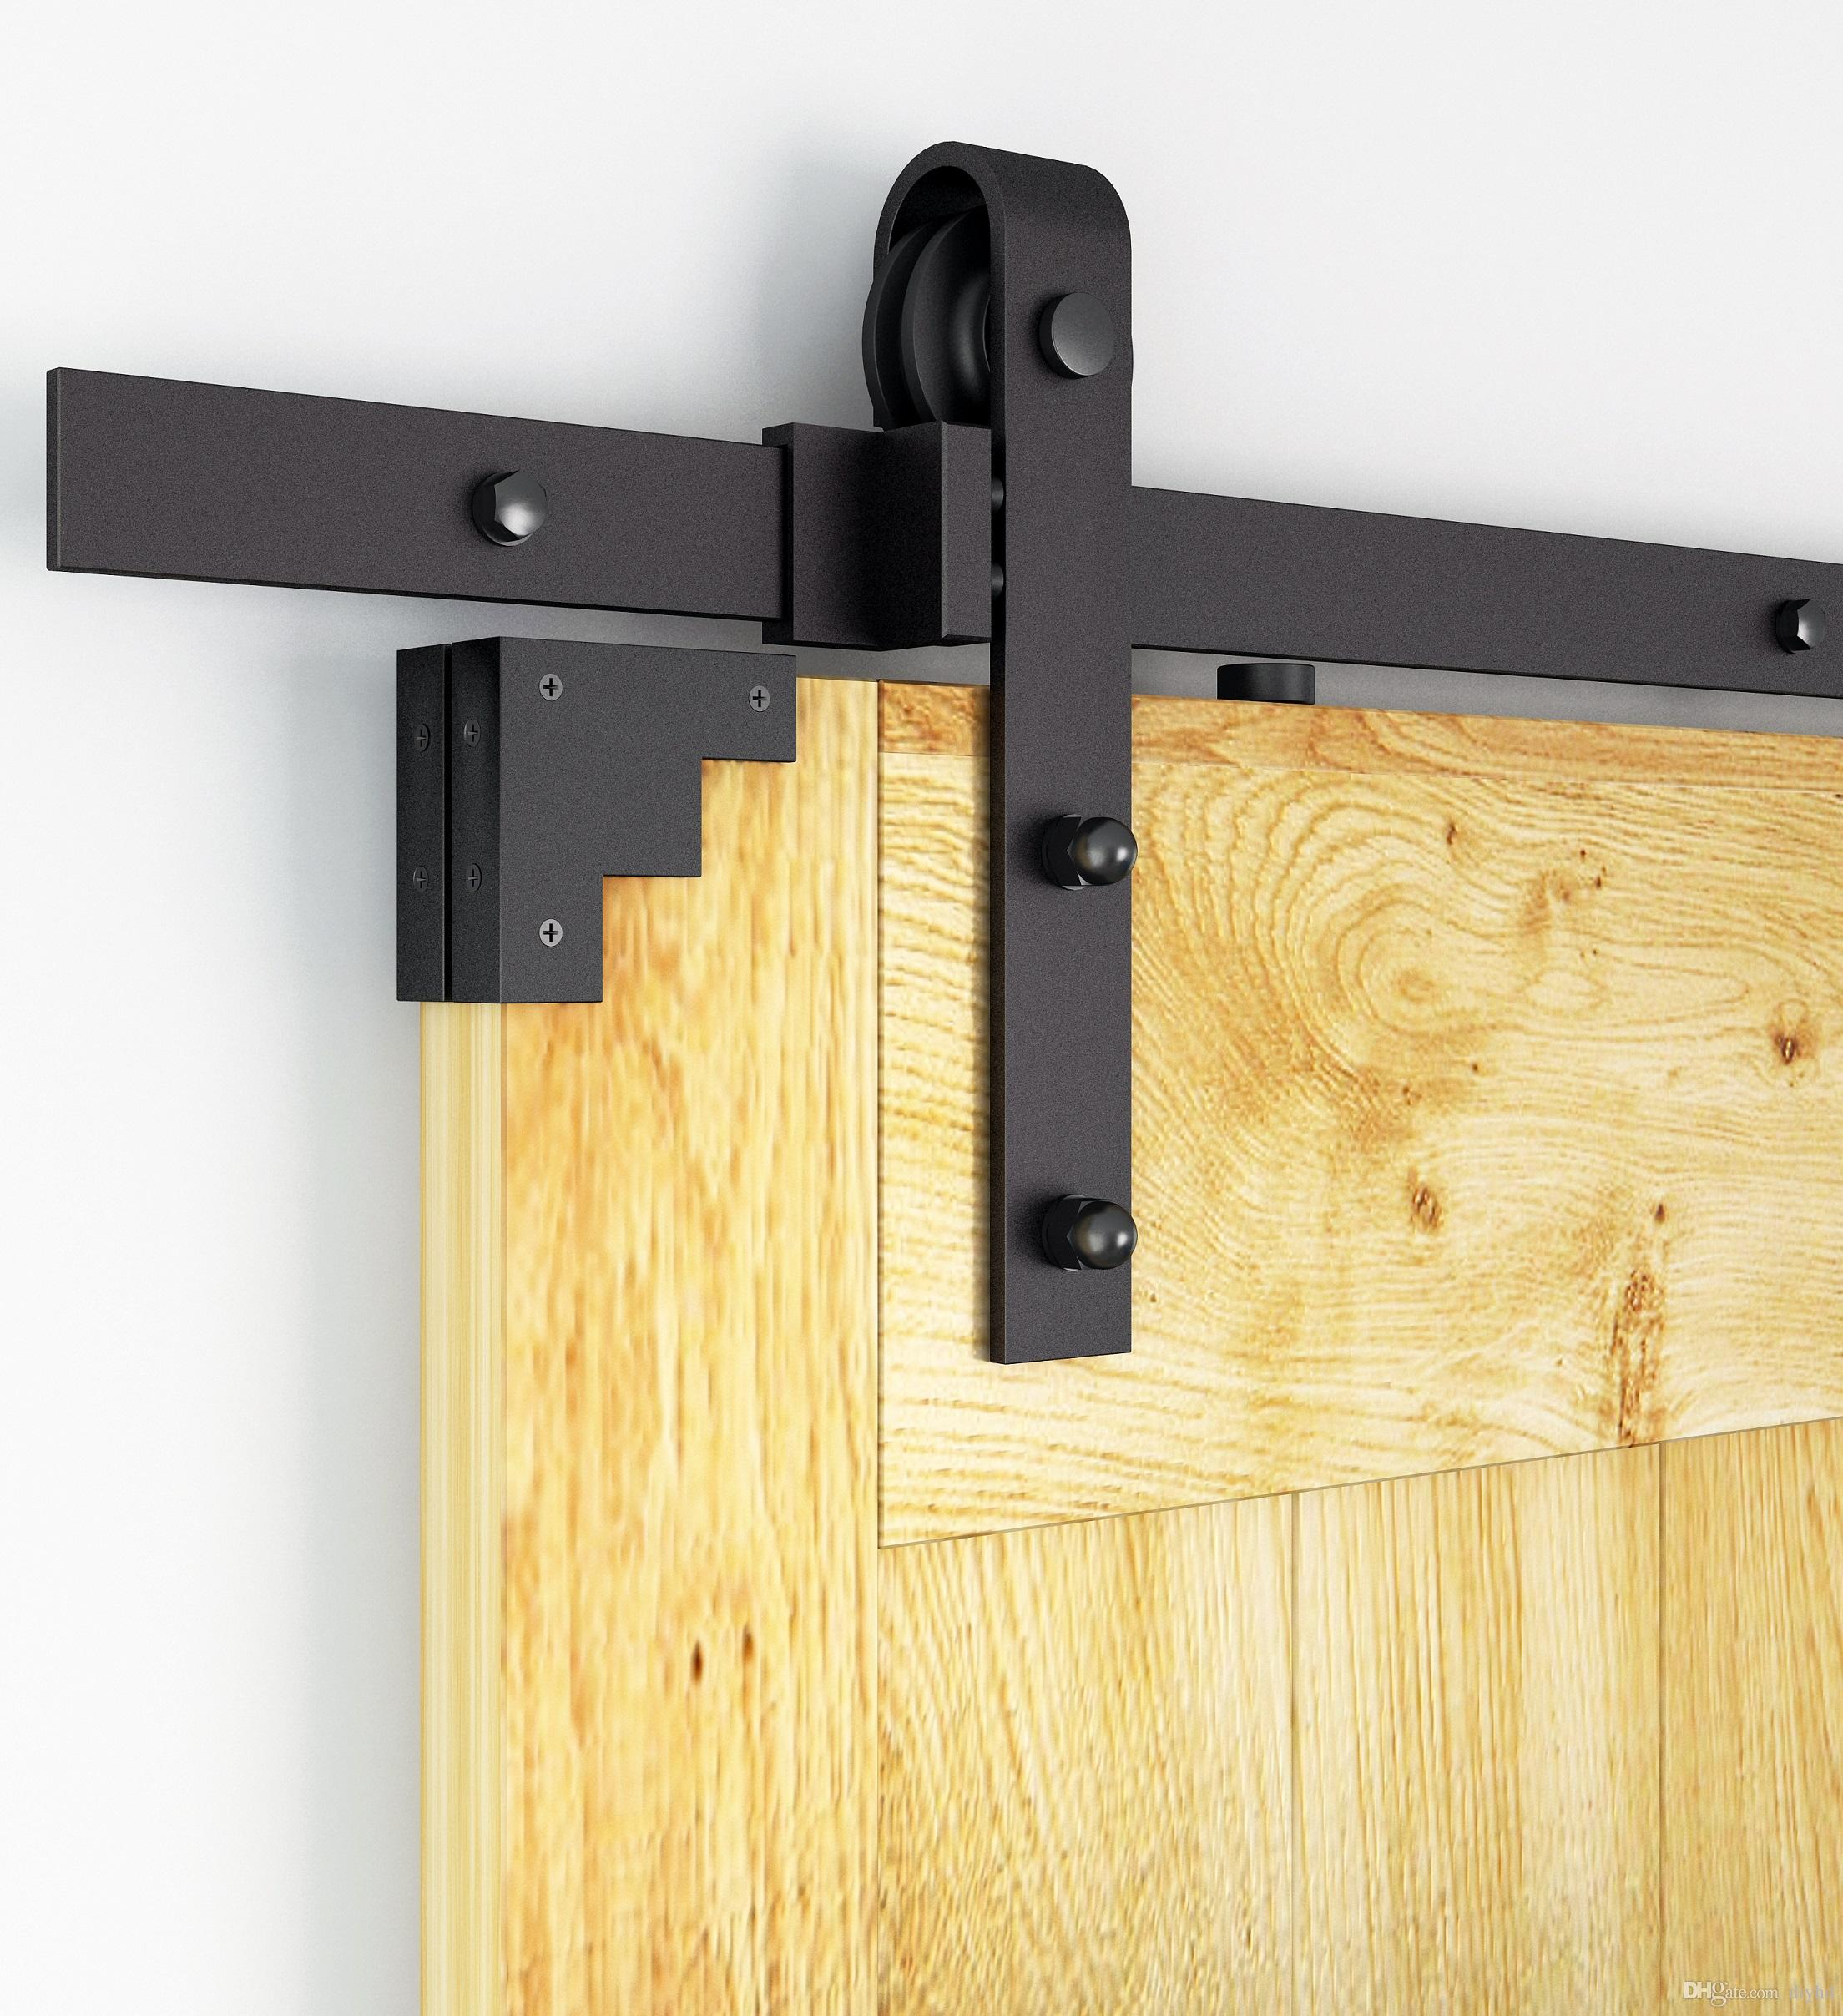 2020 6ft 8ft 10ft Rustic Black Sliding Barn Door Hardware Modern Double Barn Wood Door Hanging Track Kit From Diyhd 52 27 Dhgate Com